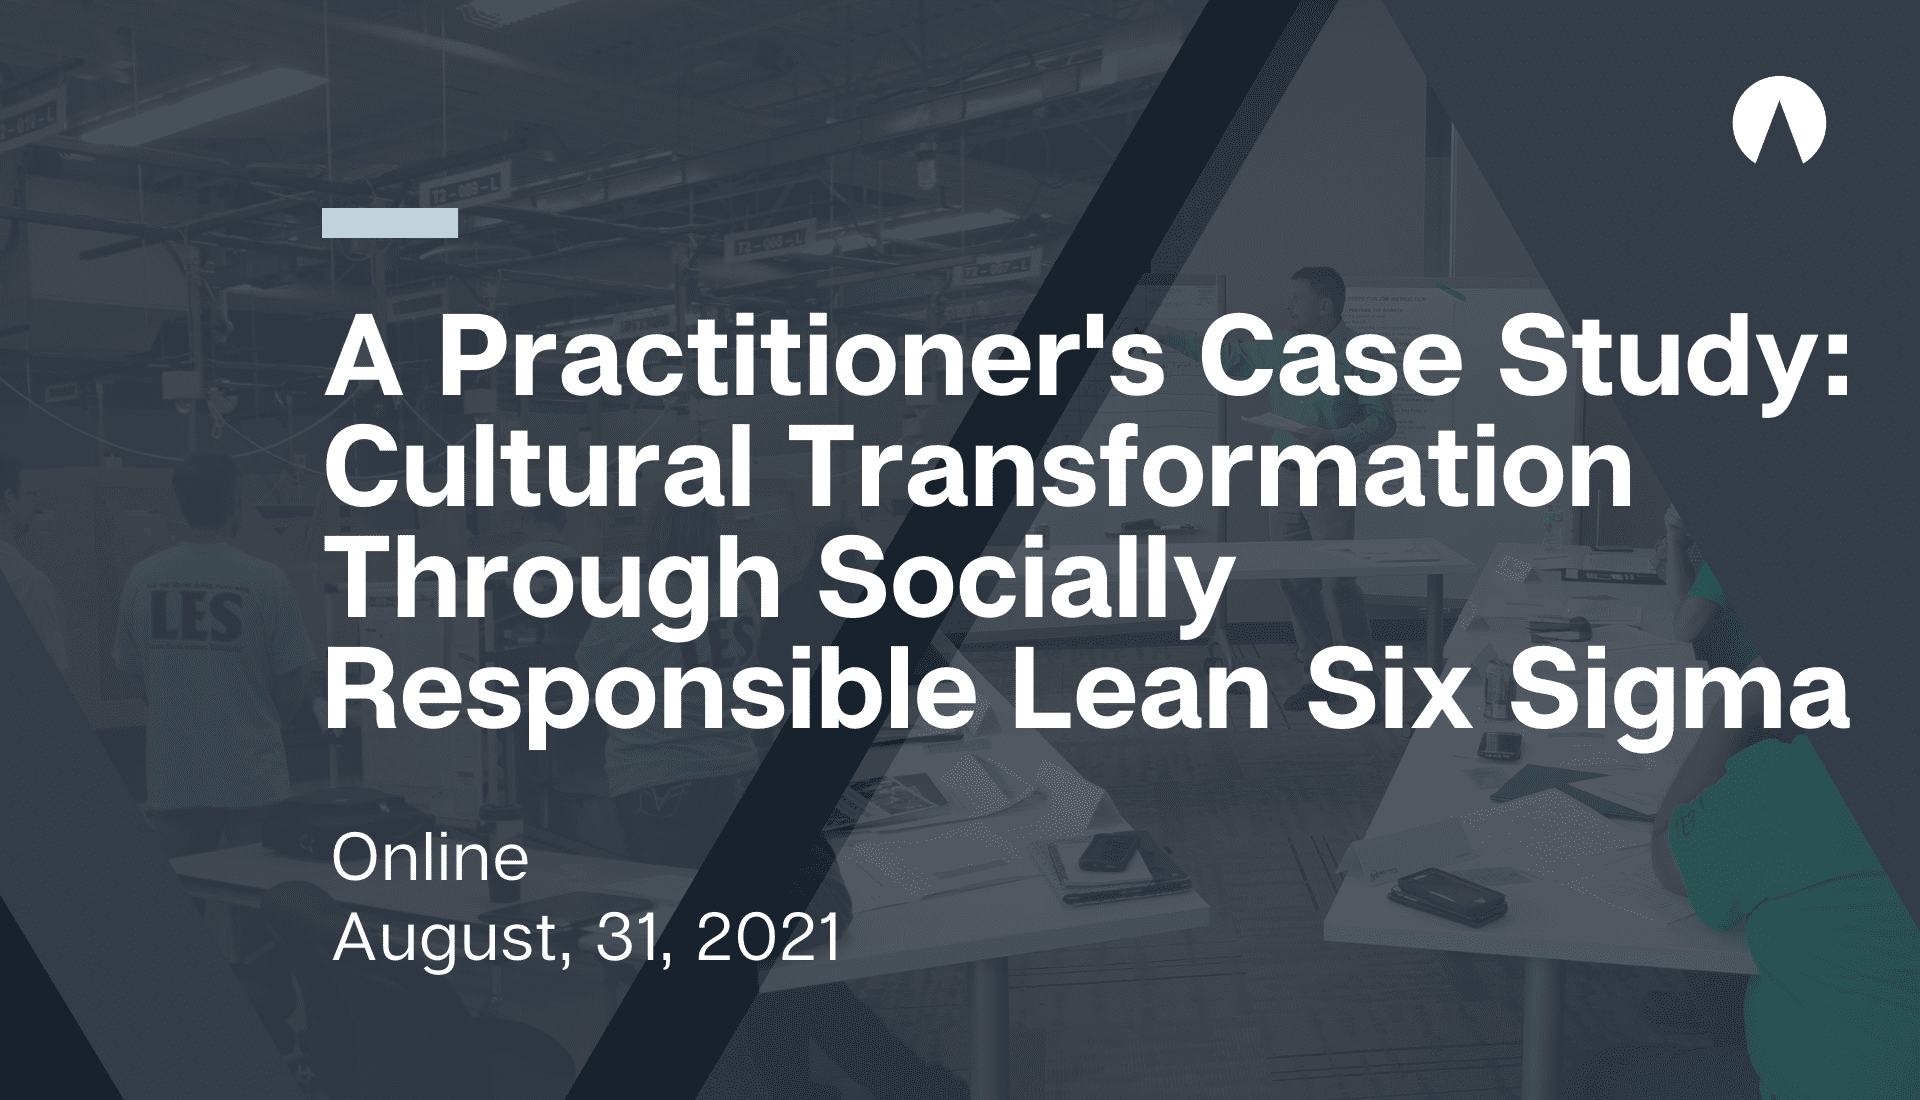 A Practitioners Case Study: Cultural Transformation Through Socially Responsible Lean Six Sigma